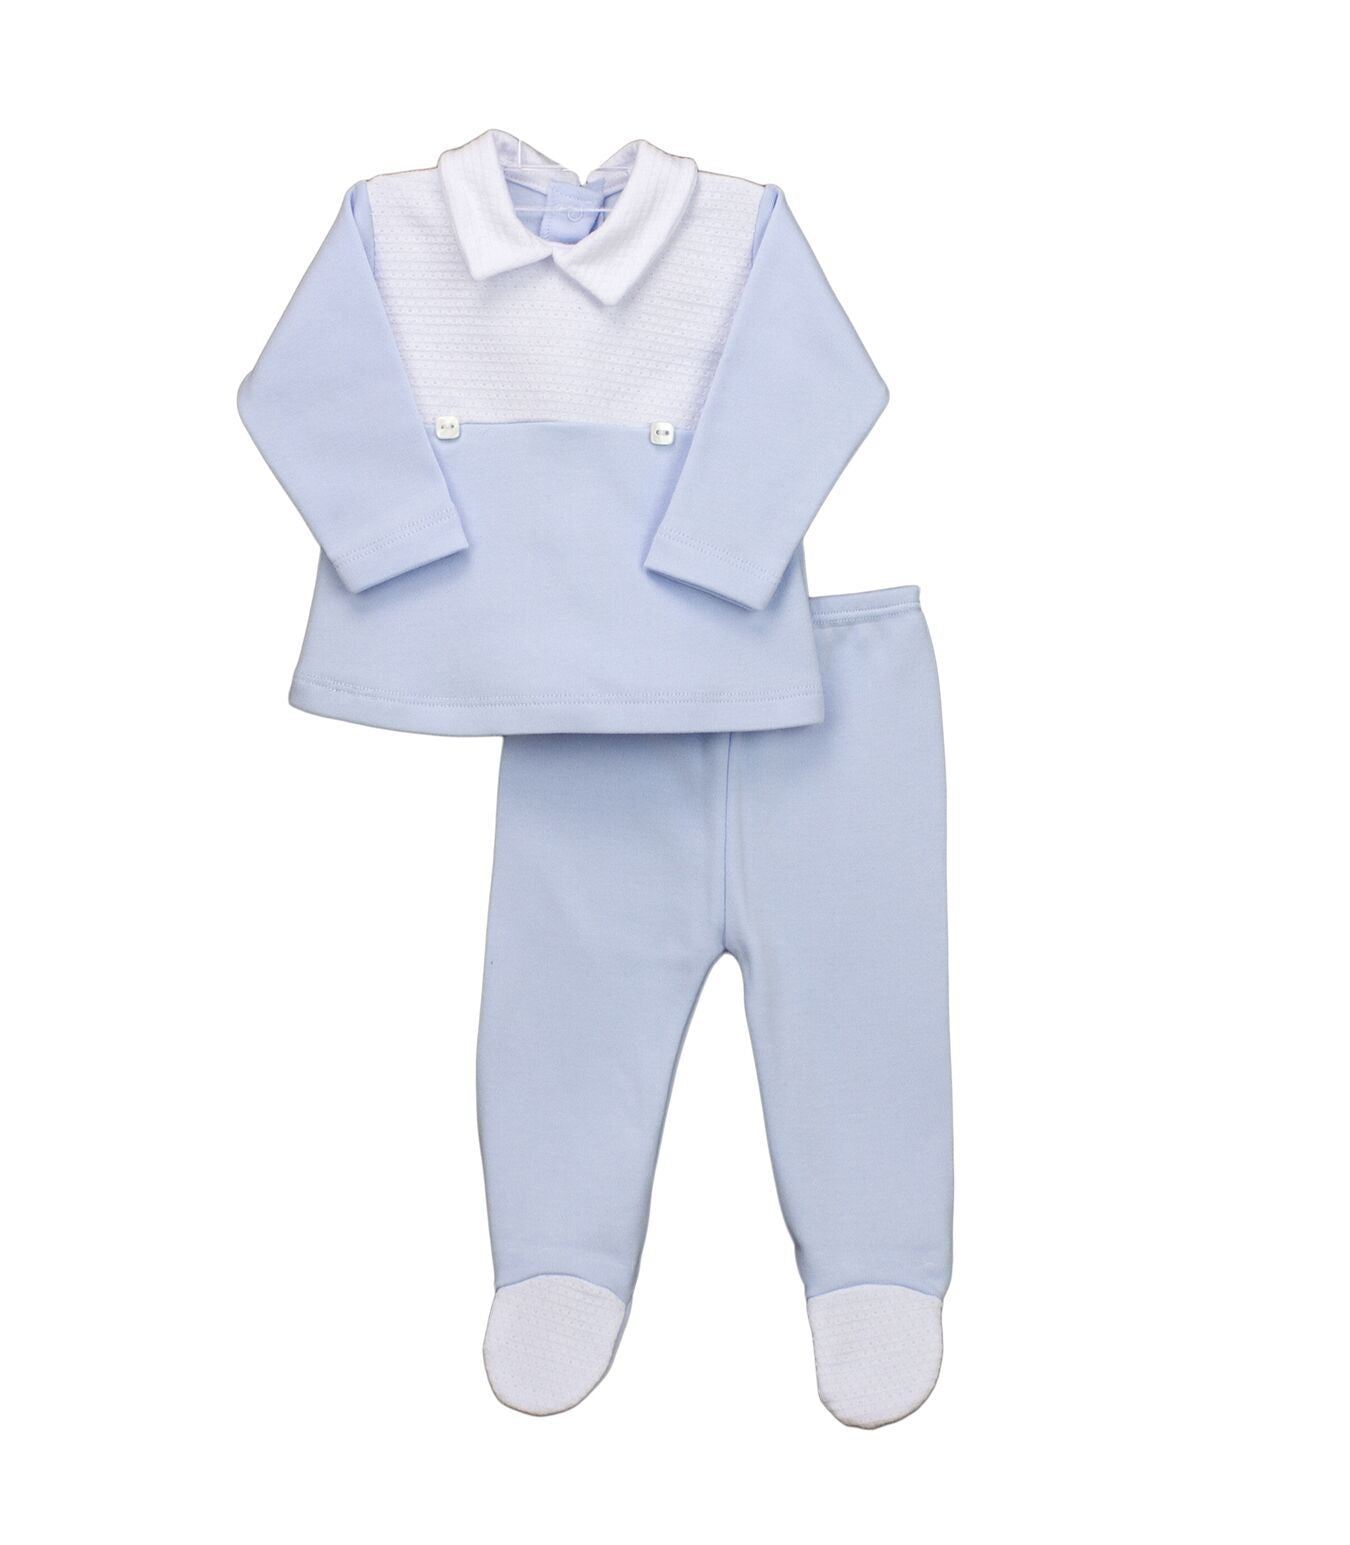 Rapife 4912 Boys 2 Piece Set With Buttons White & Blue